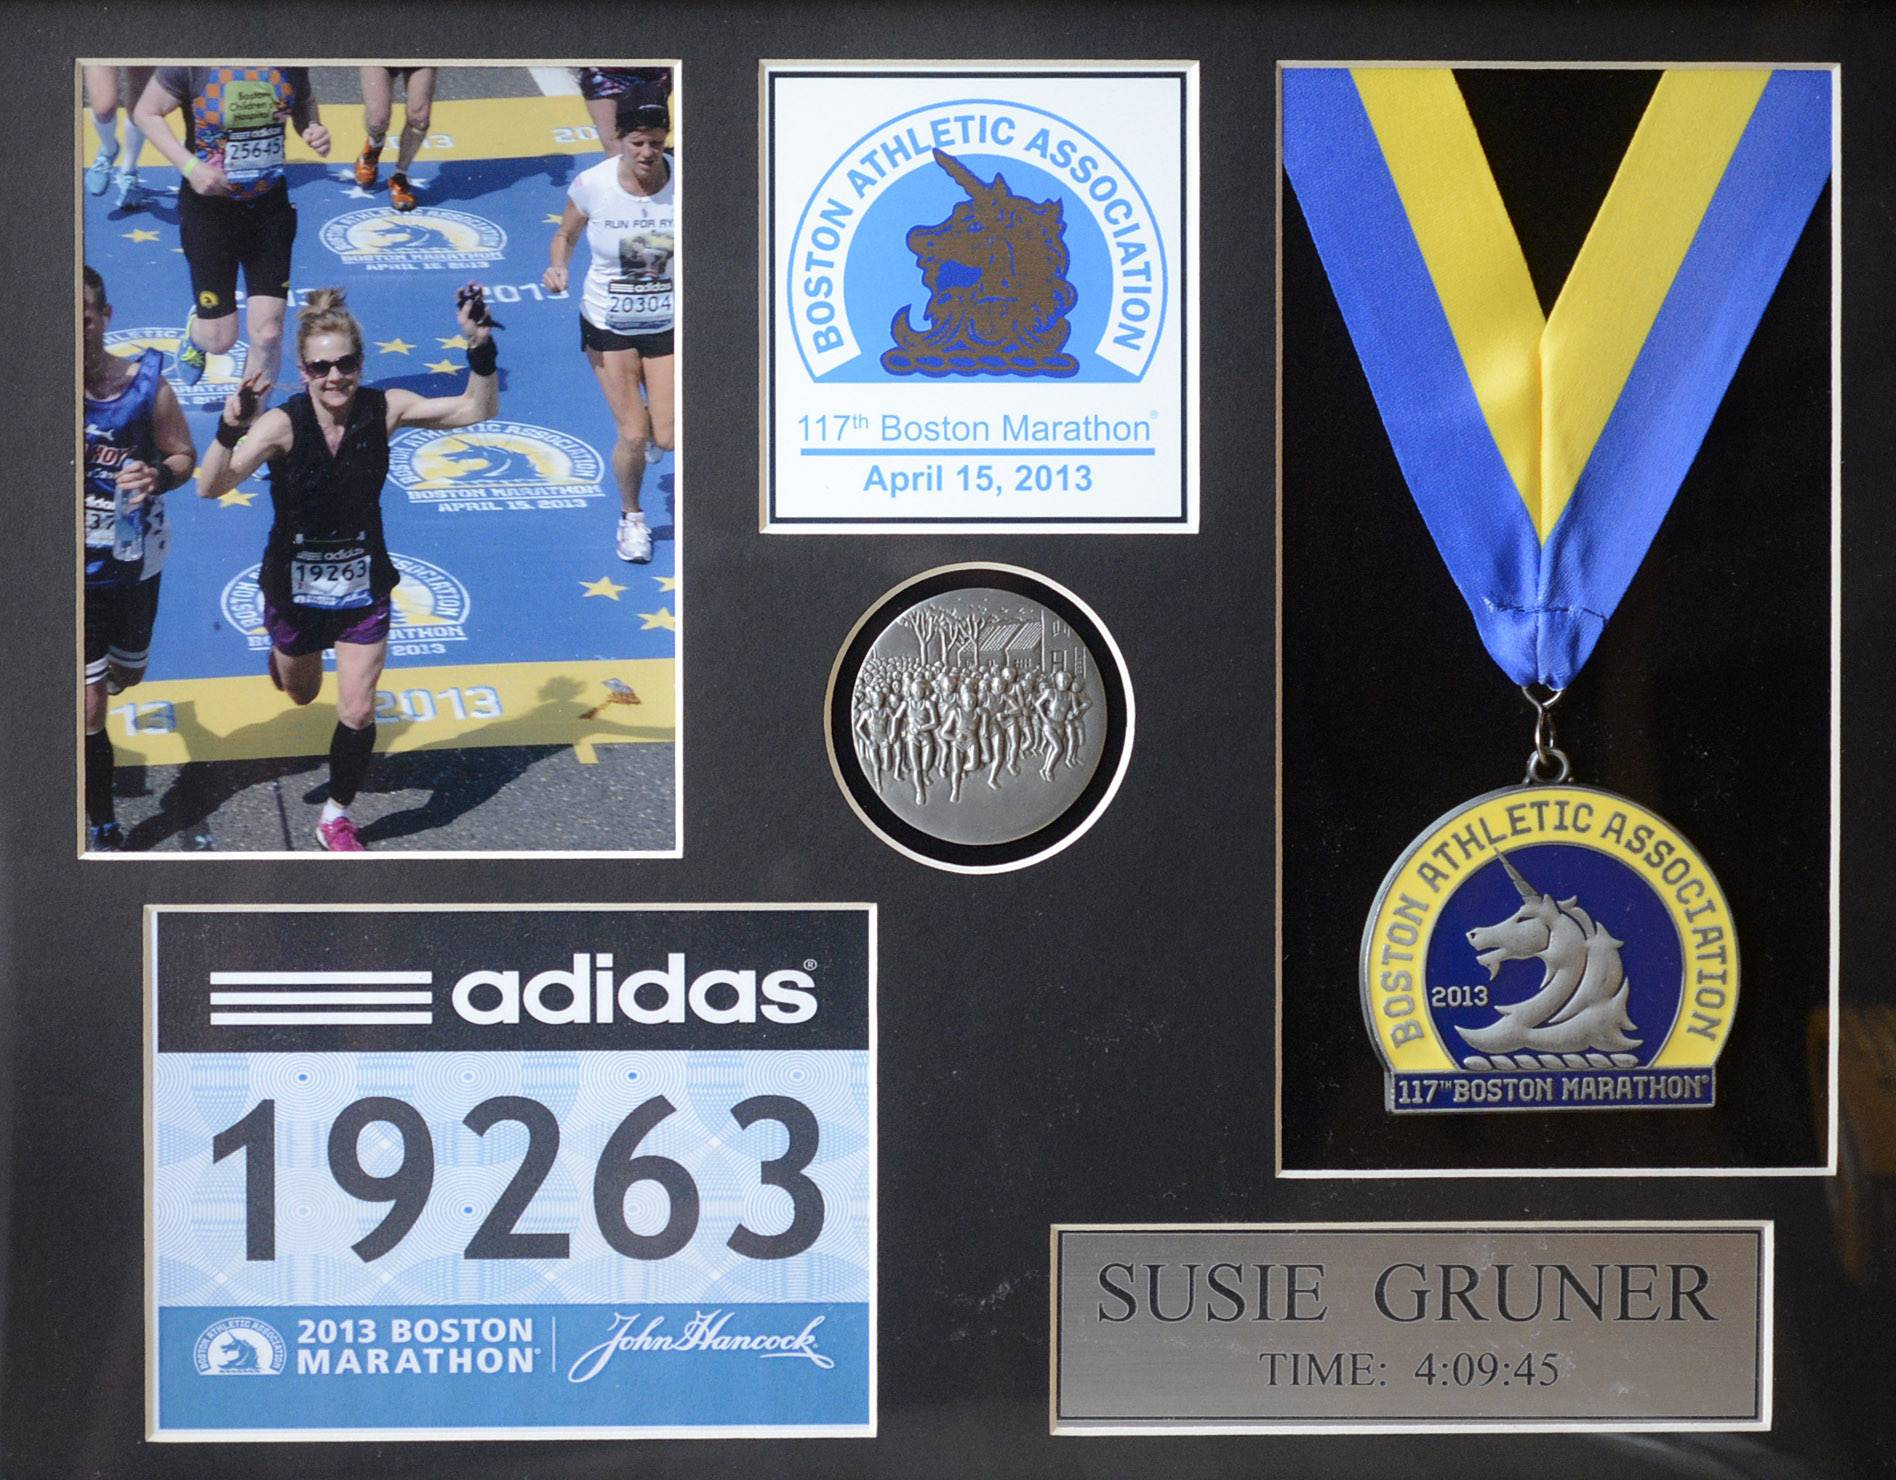 Sue Gruner has framed her memorabilia from the 117th Boston Marathon in 2013.